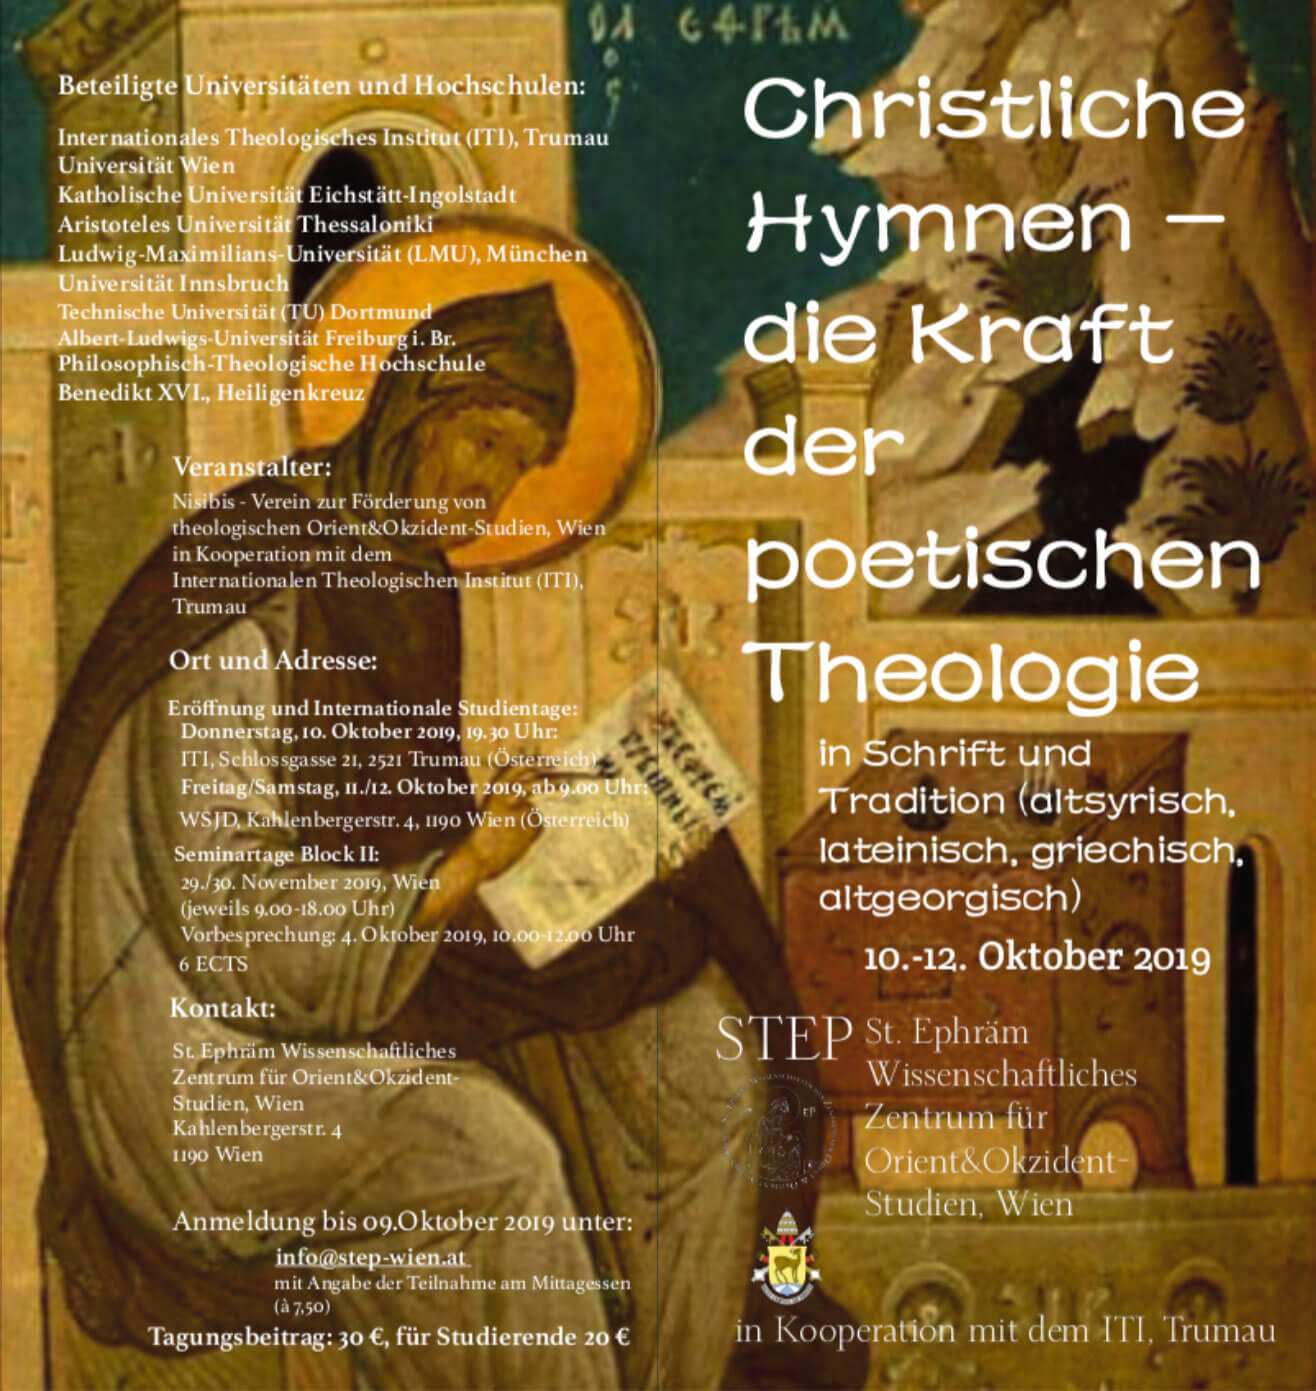 St. Ephräm Christliche Hymnen Flyer Download Thumb